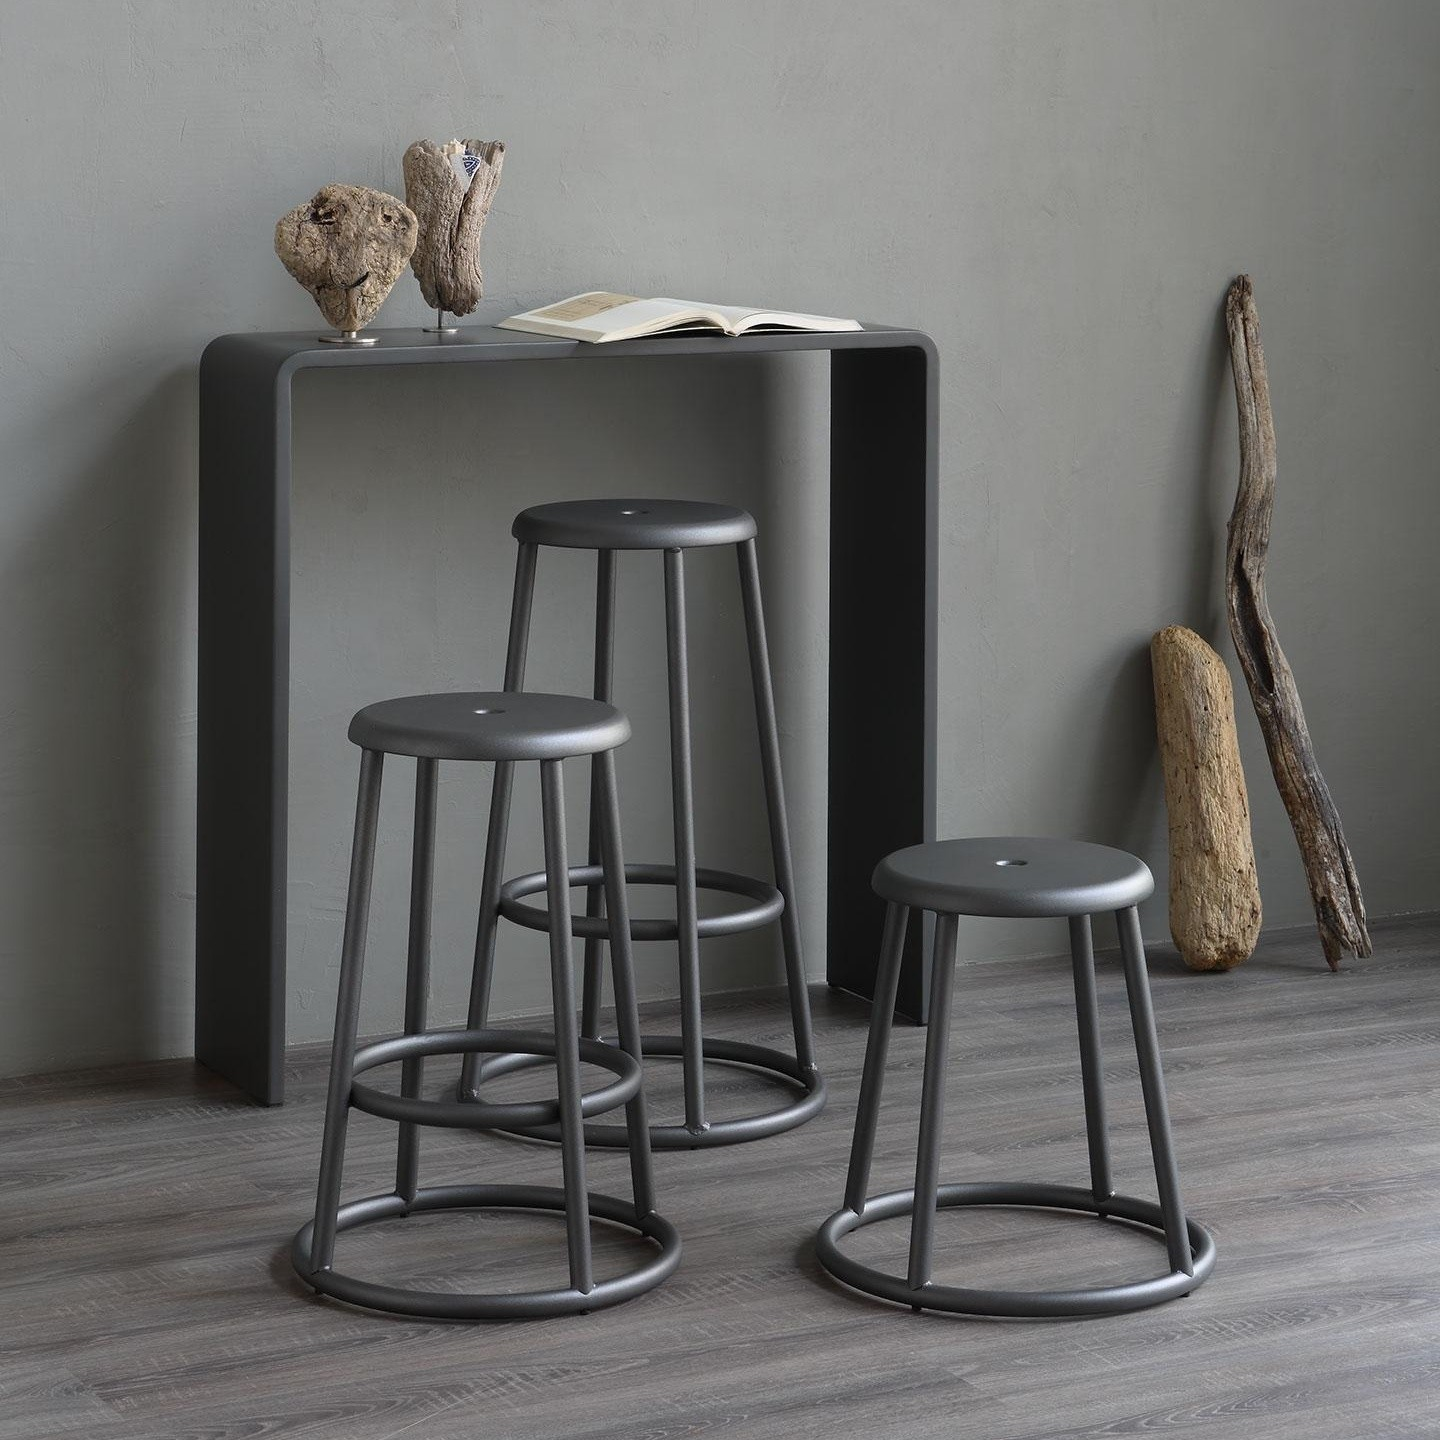 Barhocker Industrial Industrial Bar Stool 64cm